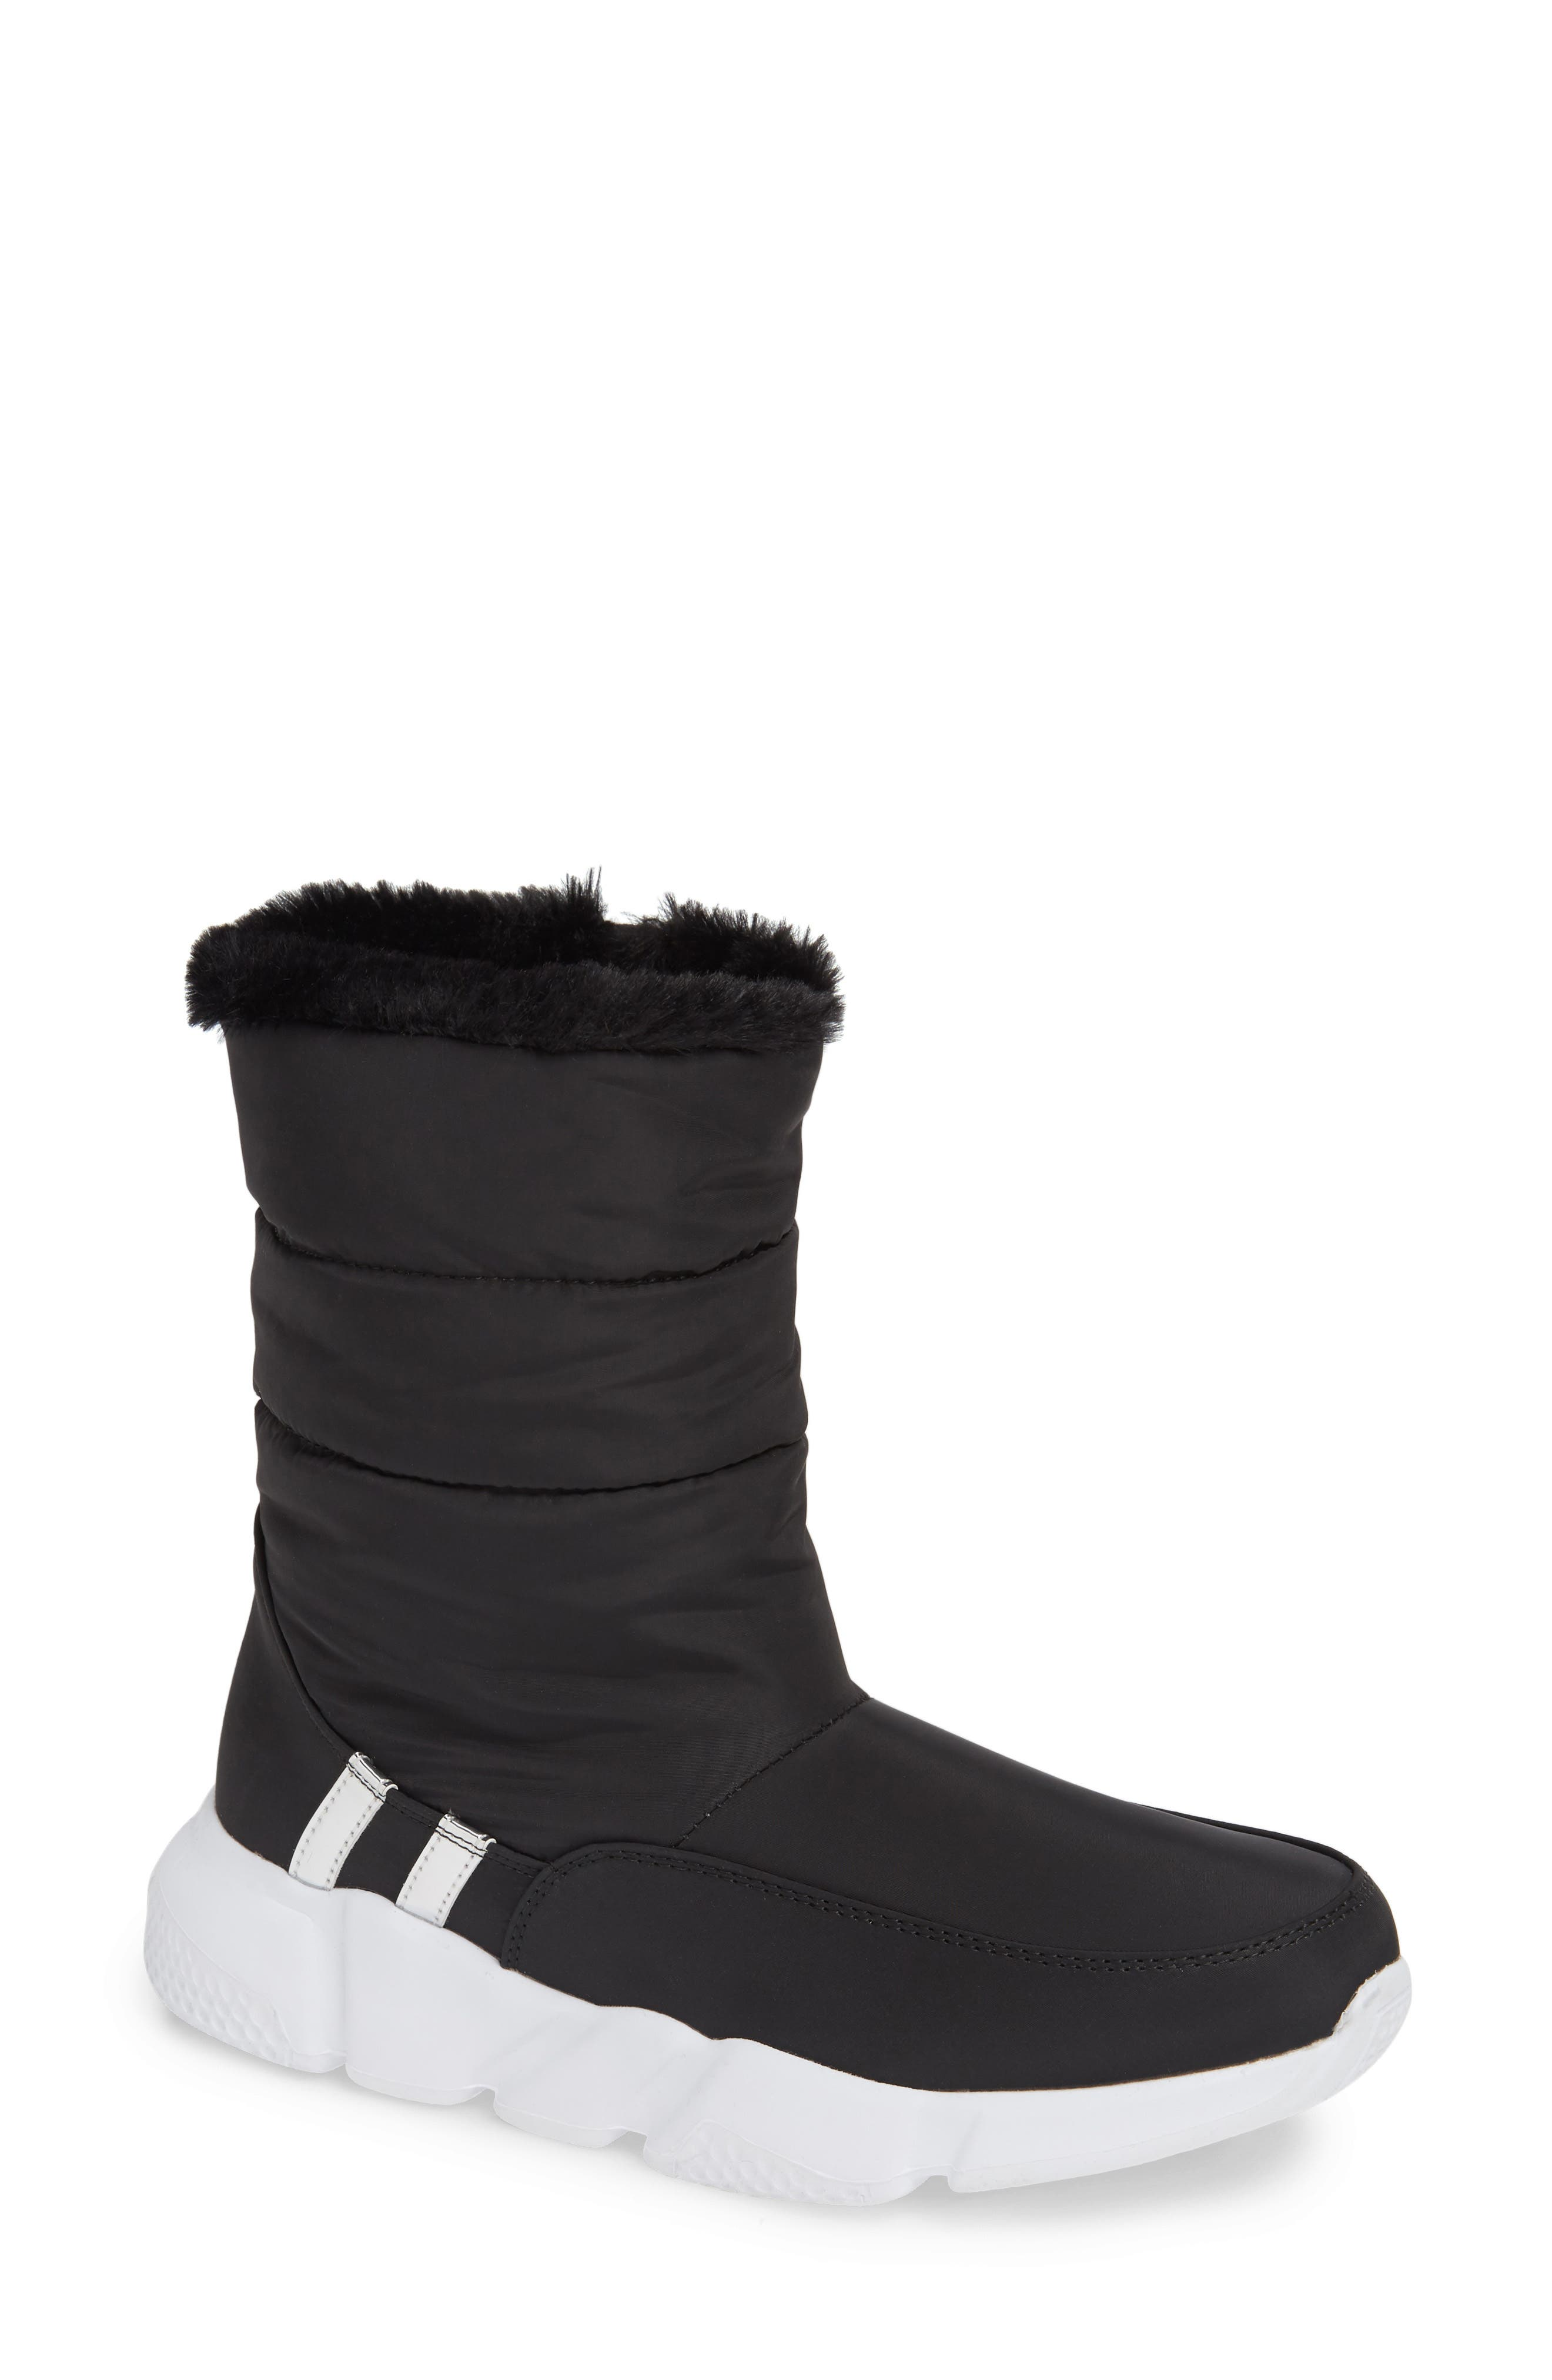 STEVE MADDEN Snowday Faux Fur Lined Boot, Main, color, BLACK